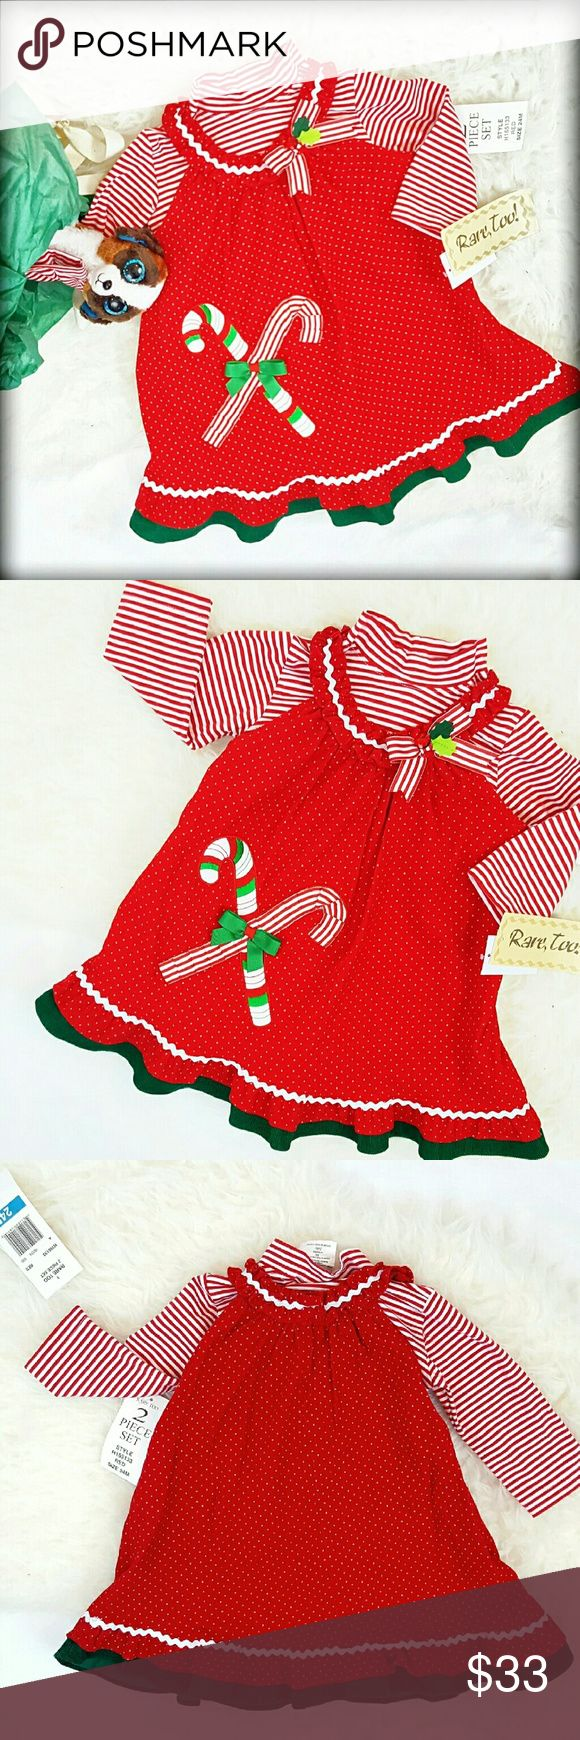 """30%/2🚨NWT 24M Christmas Jumper Dress Top Set I love this Adorable Rare, Too Girl's holiday Jumper dress set because the details are just exquisite. New with tags! Such a sweet and fun mock turtleneck and jumper set. Ribbon detailed Candy canes & Ric Rack add to the sweetness of this dress. Dress is Cotton Corduroy, top Cotton/37% polyester,5% spandex.Length: 19"""" Approximately. Just too cute! Rare, Too by Rare Editions. Check out my other kids holiday wear to bundle for great discounts! Rare…"""